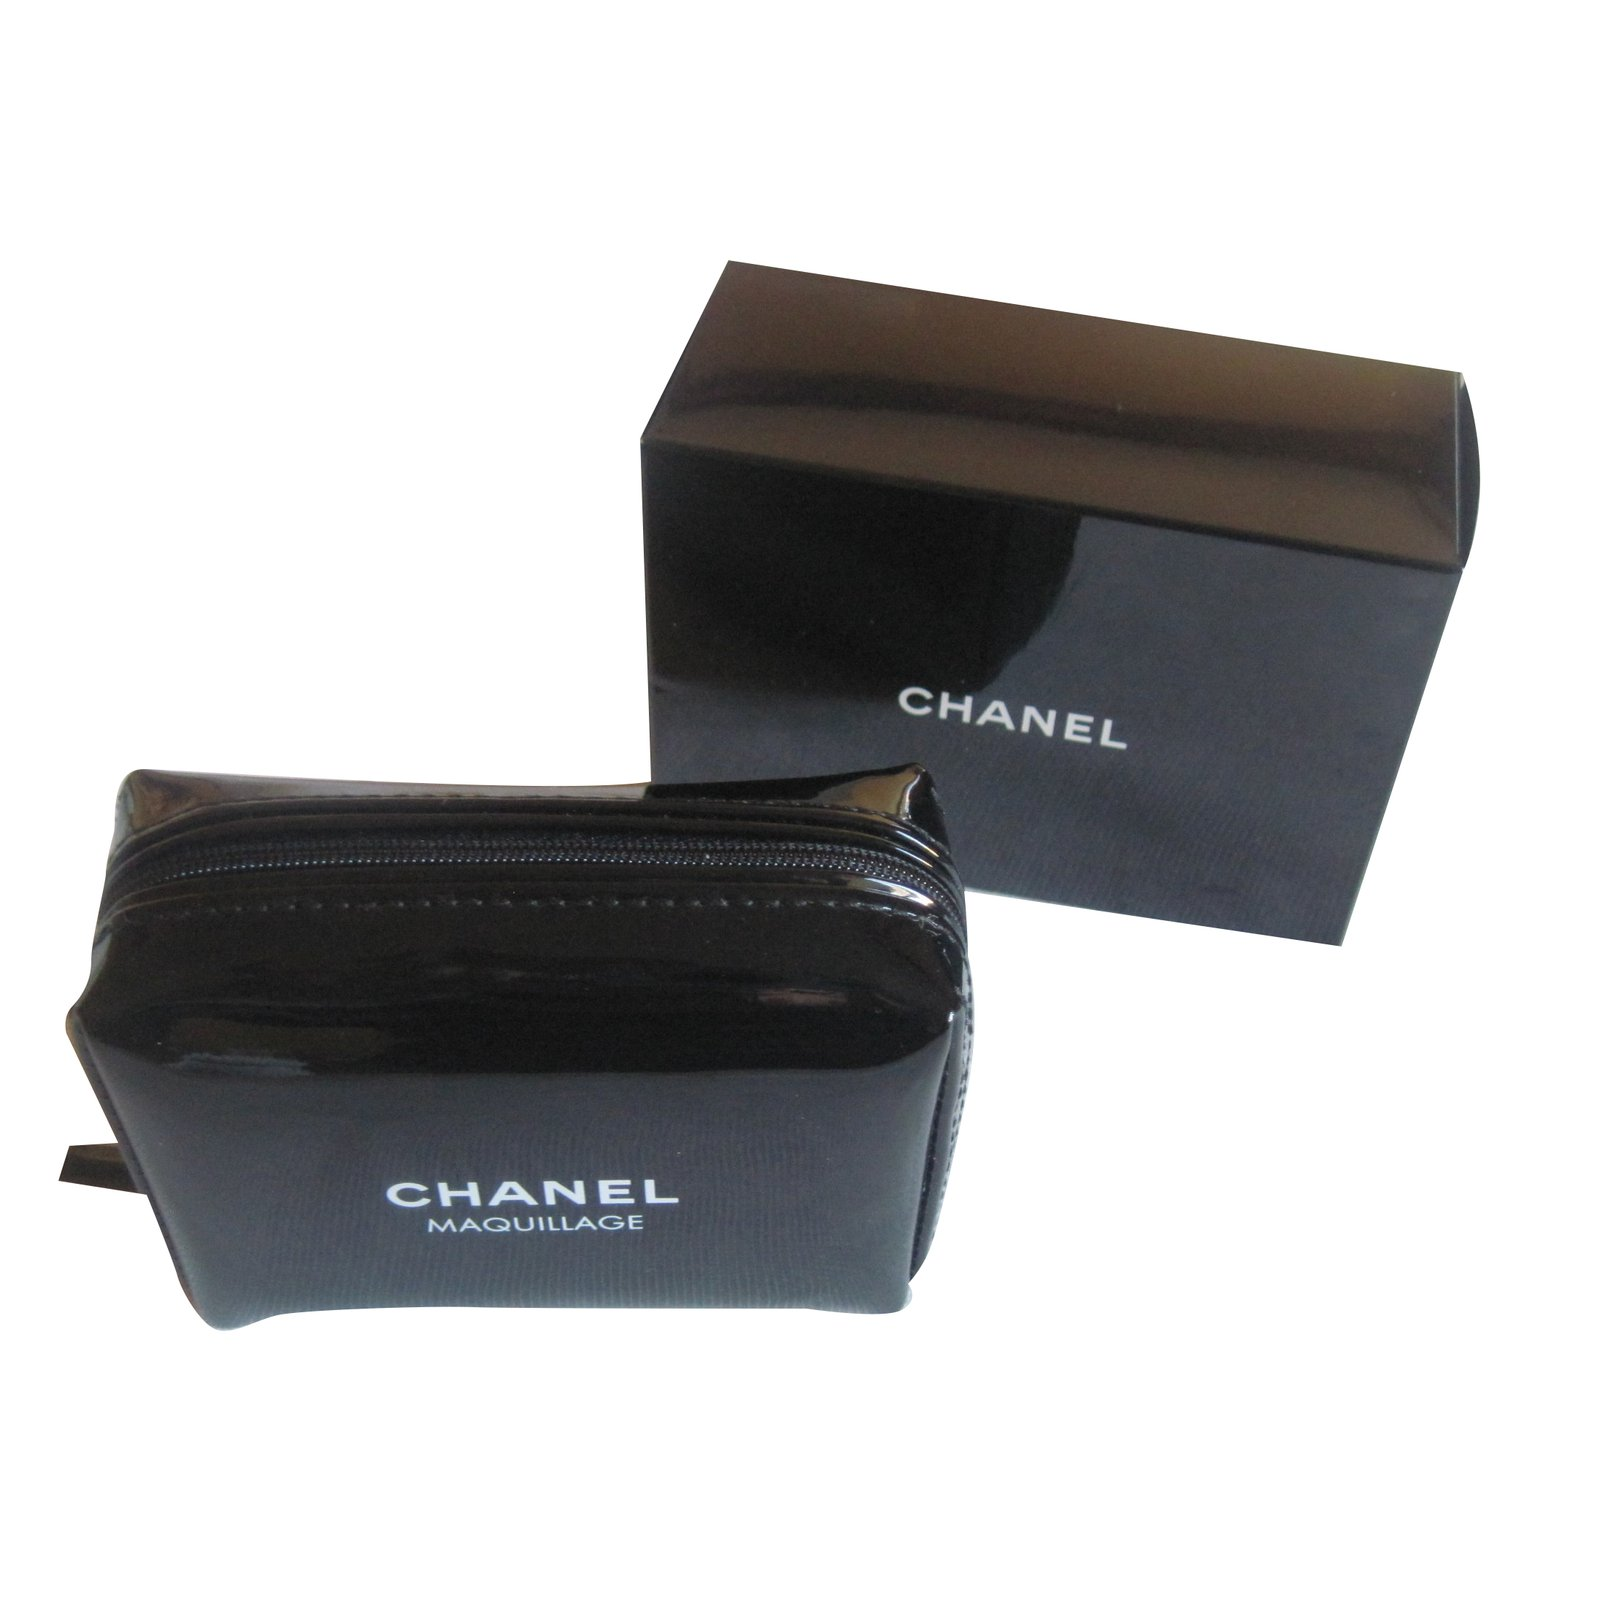 Chanel Makeup Bag Vip Gifts Patent Leather Black Ref 30563